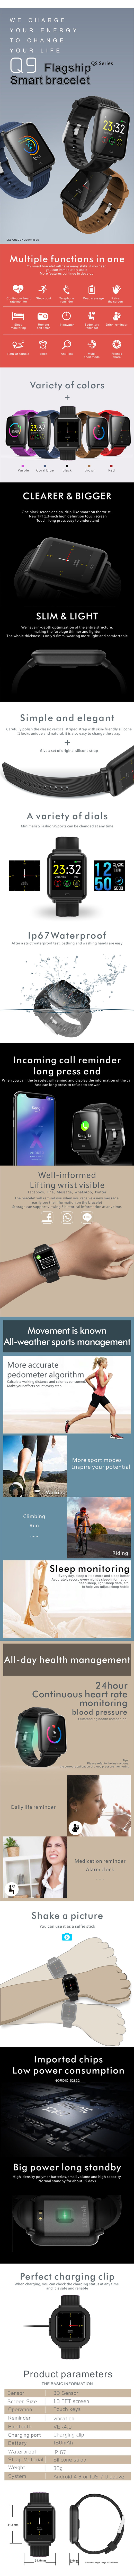 2019 Trending Productsoem Fitness Android Heart Rate Monitor 10atm  Waterproof Q9 Smartwatch User Manual - Buy Q9 Smartwatch,10atm Waterproof